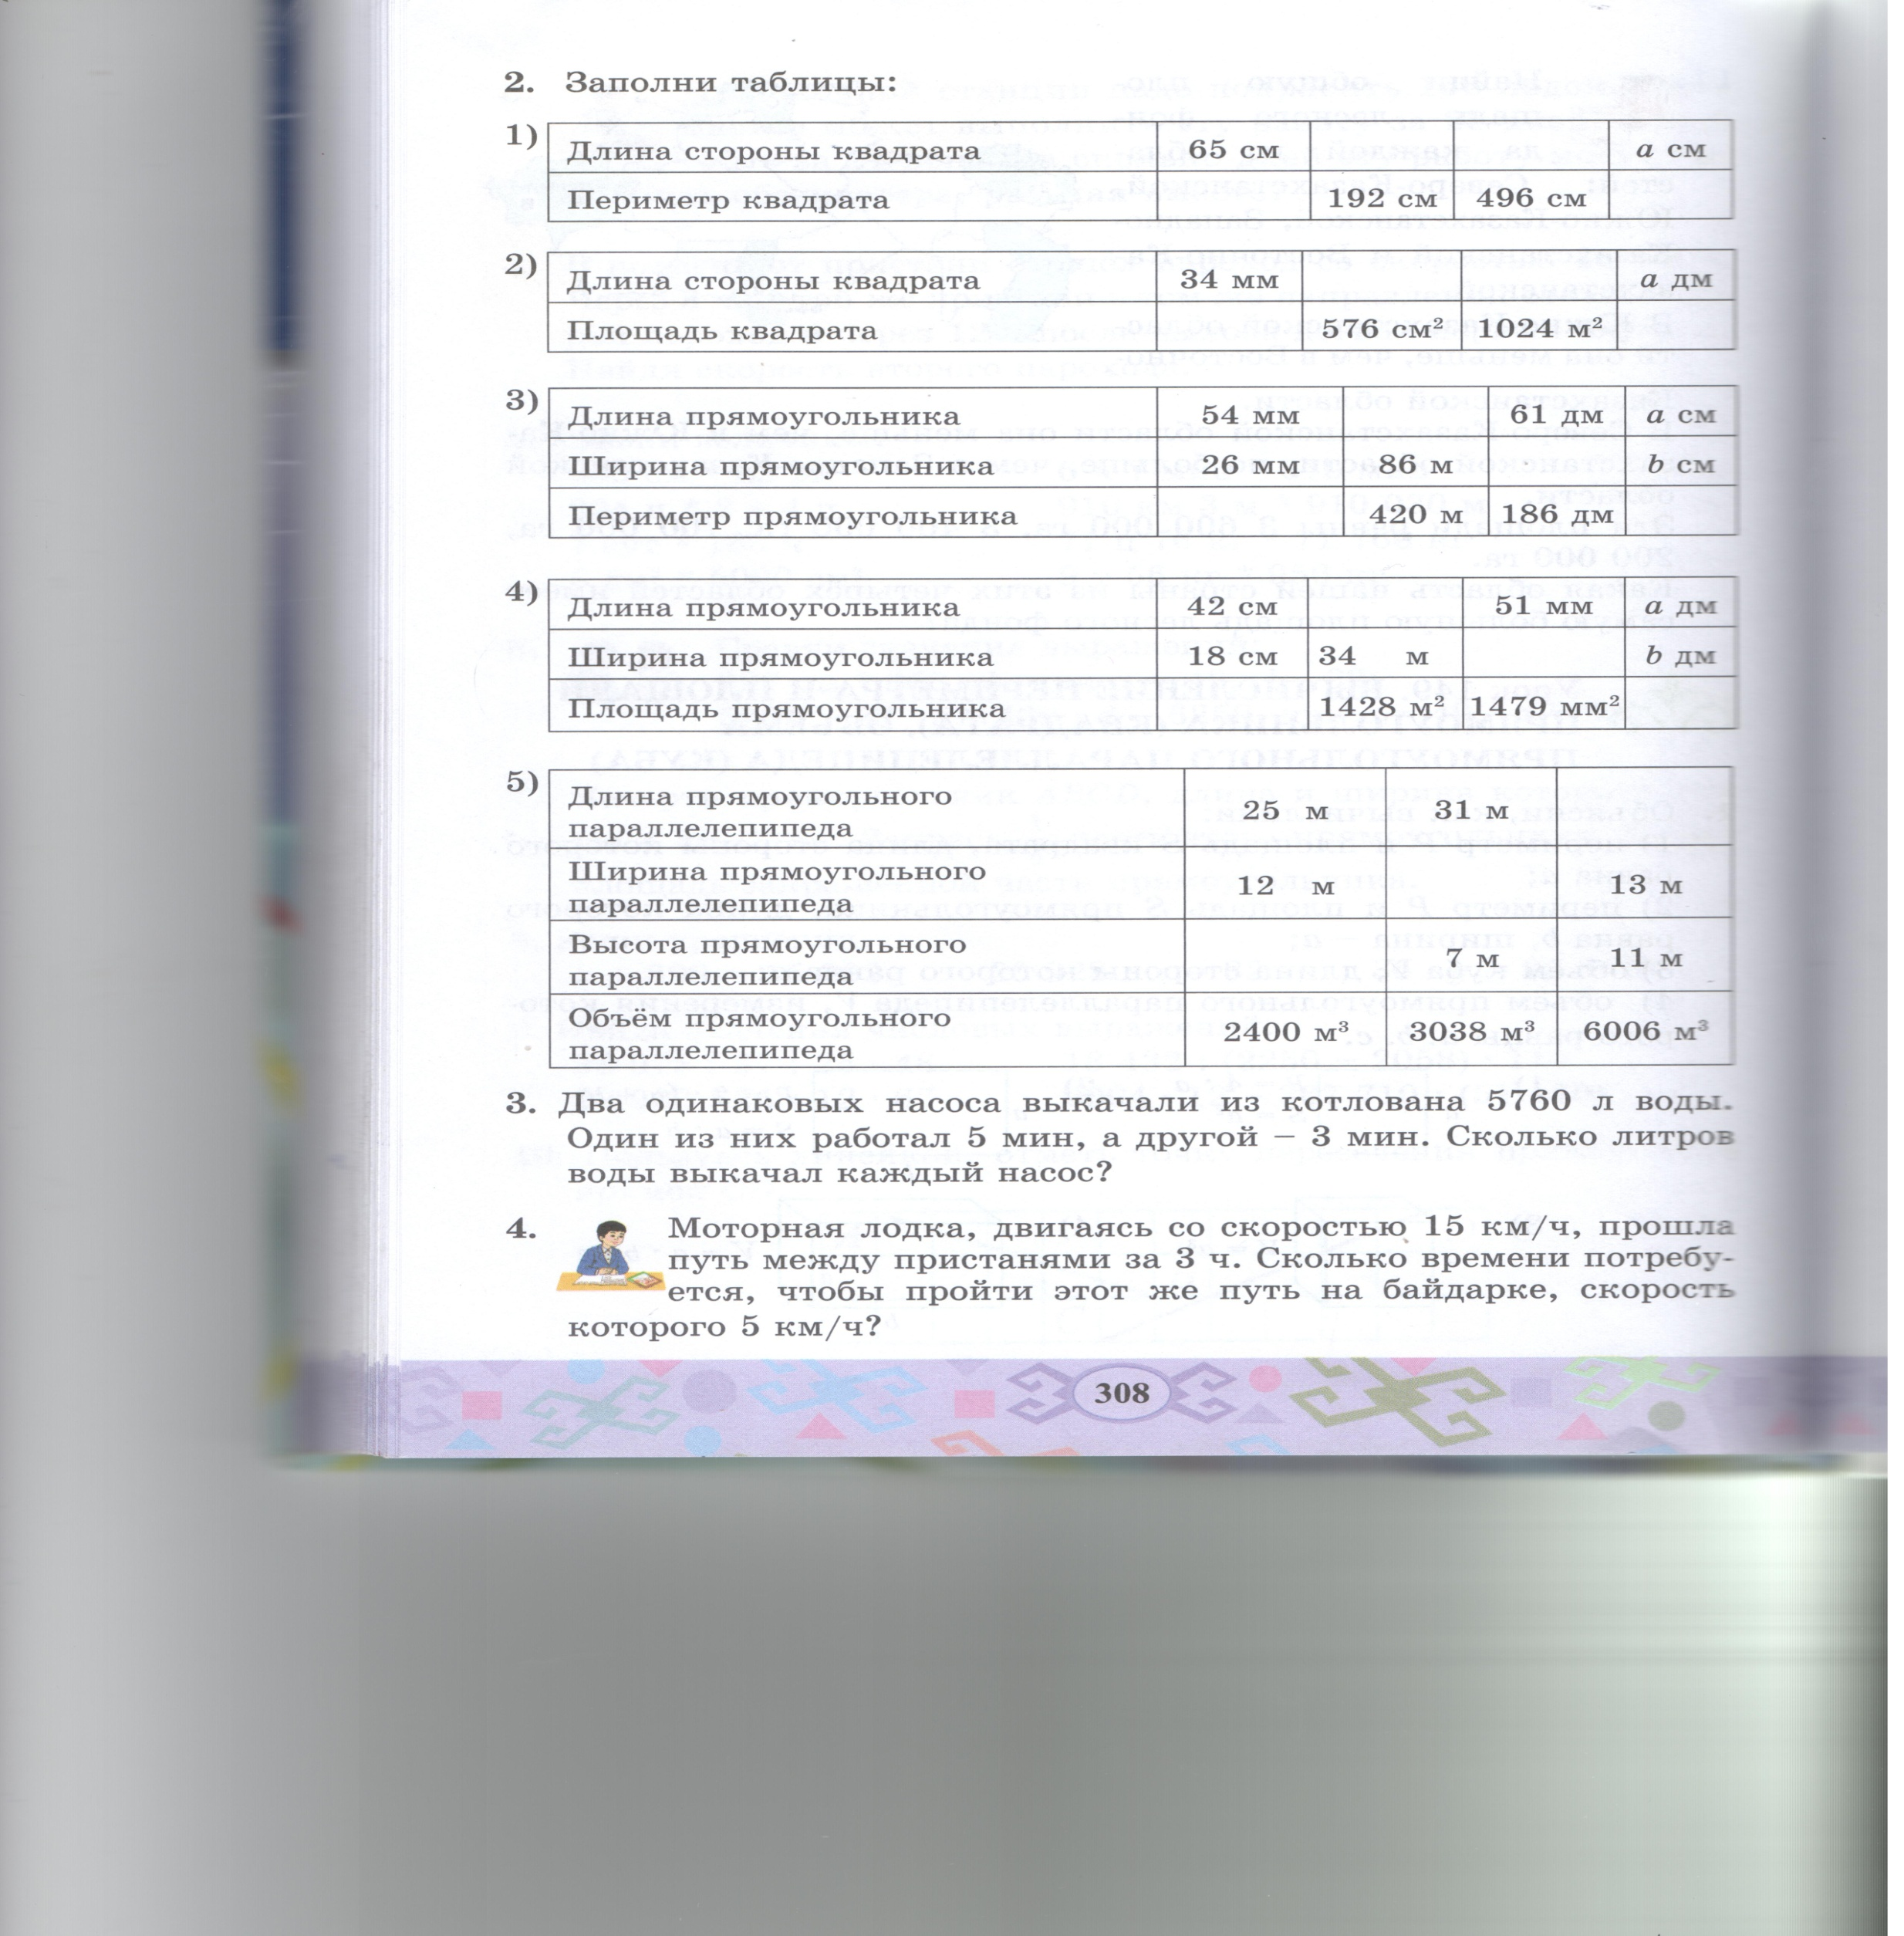 C:\Users\Школа 2\Documents\Scanned Documents\Рисунок (272).jpg